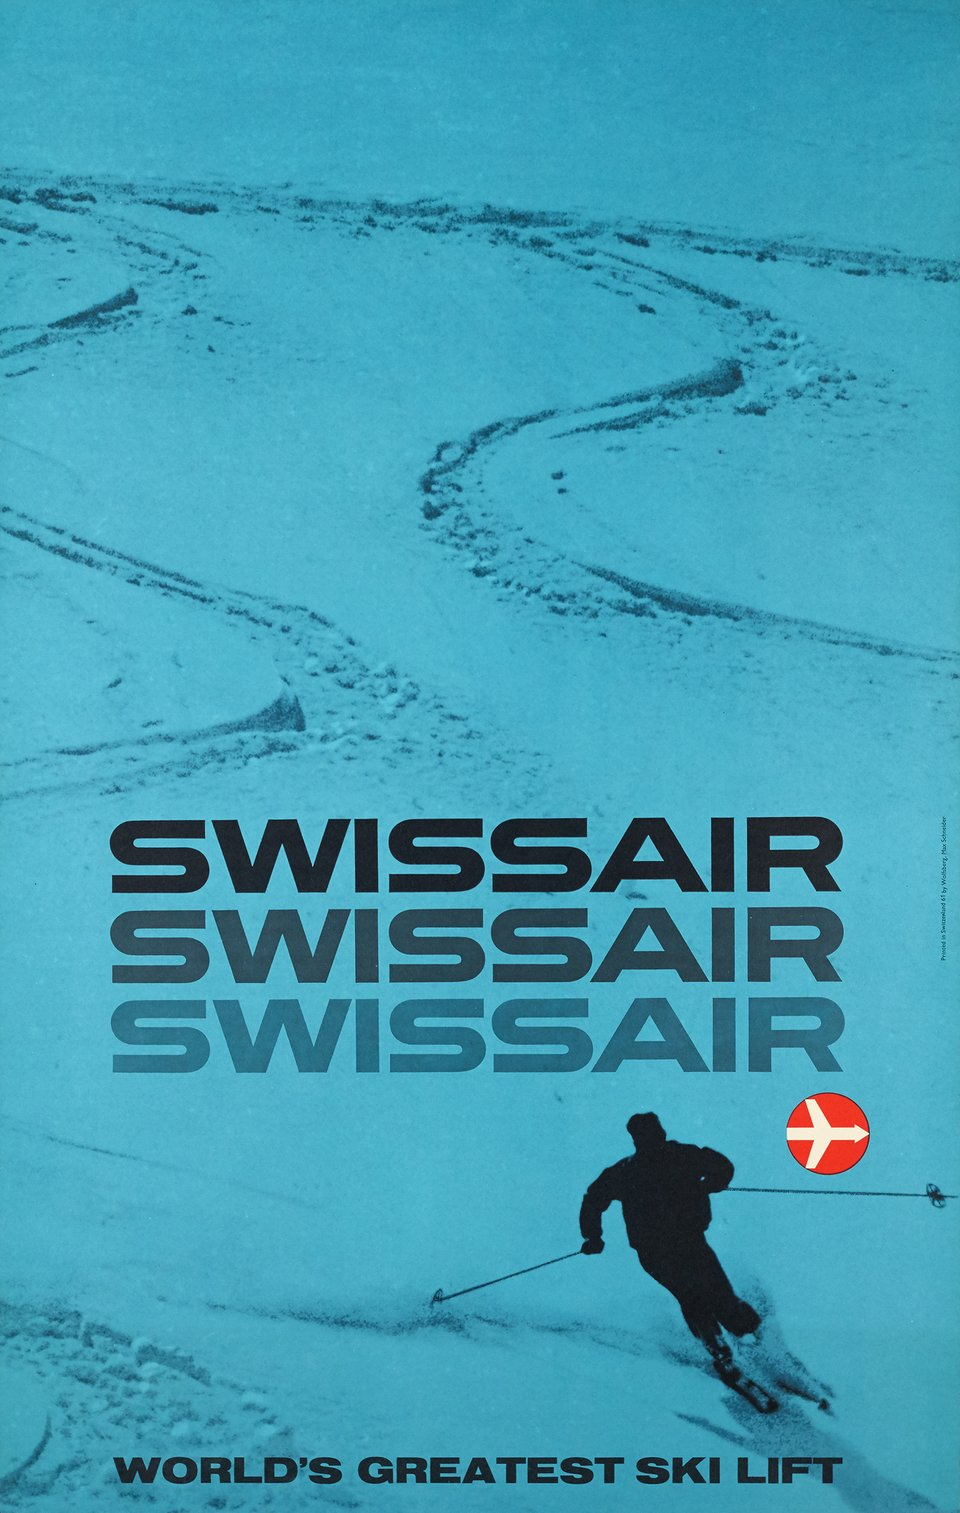 Swissair, World's greatest ski lift – Affiche ancienne – Max SCHNEIDER – 1961